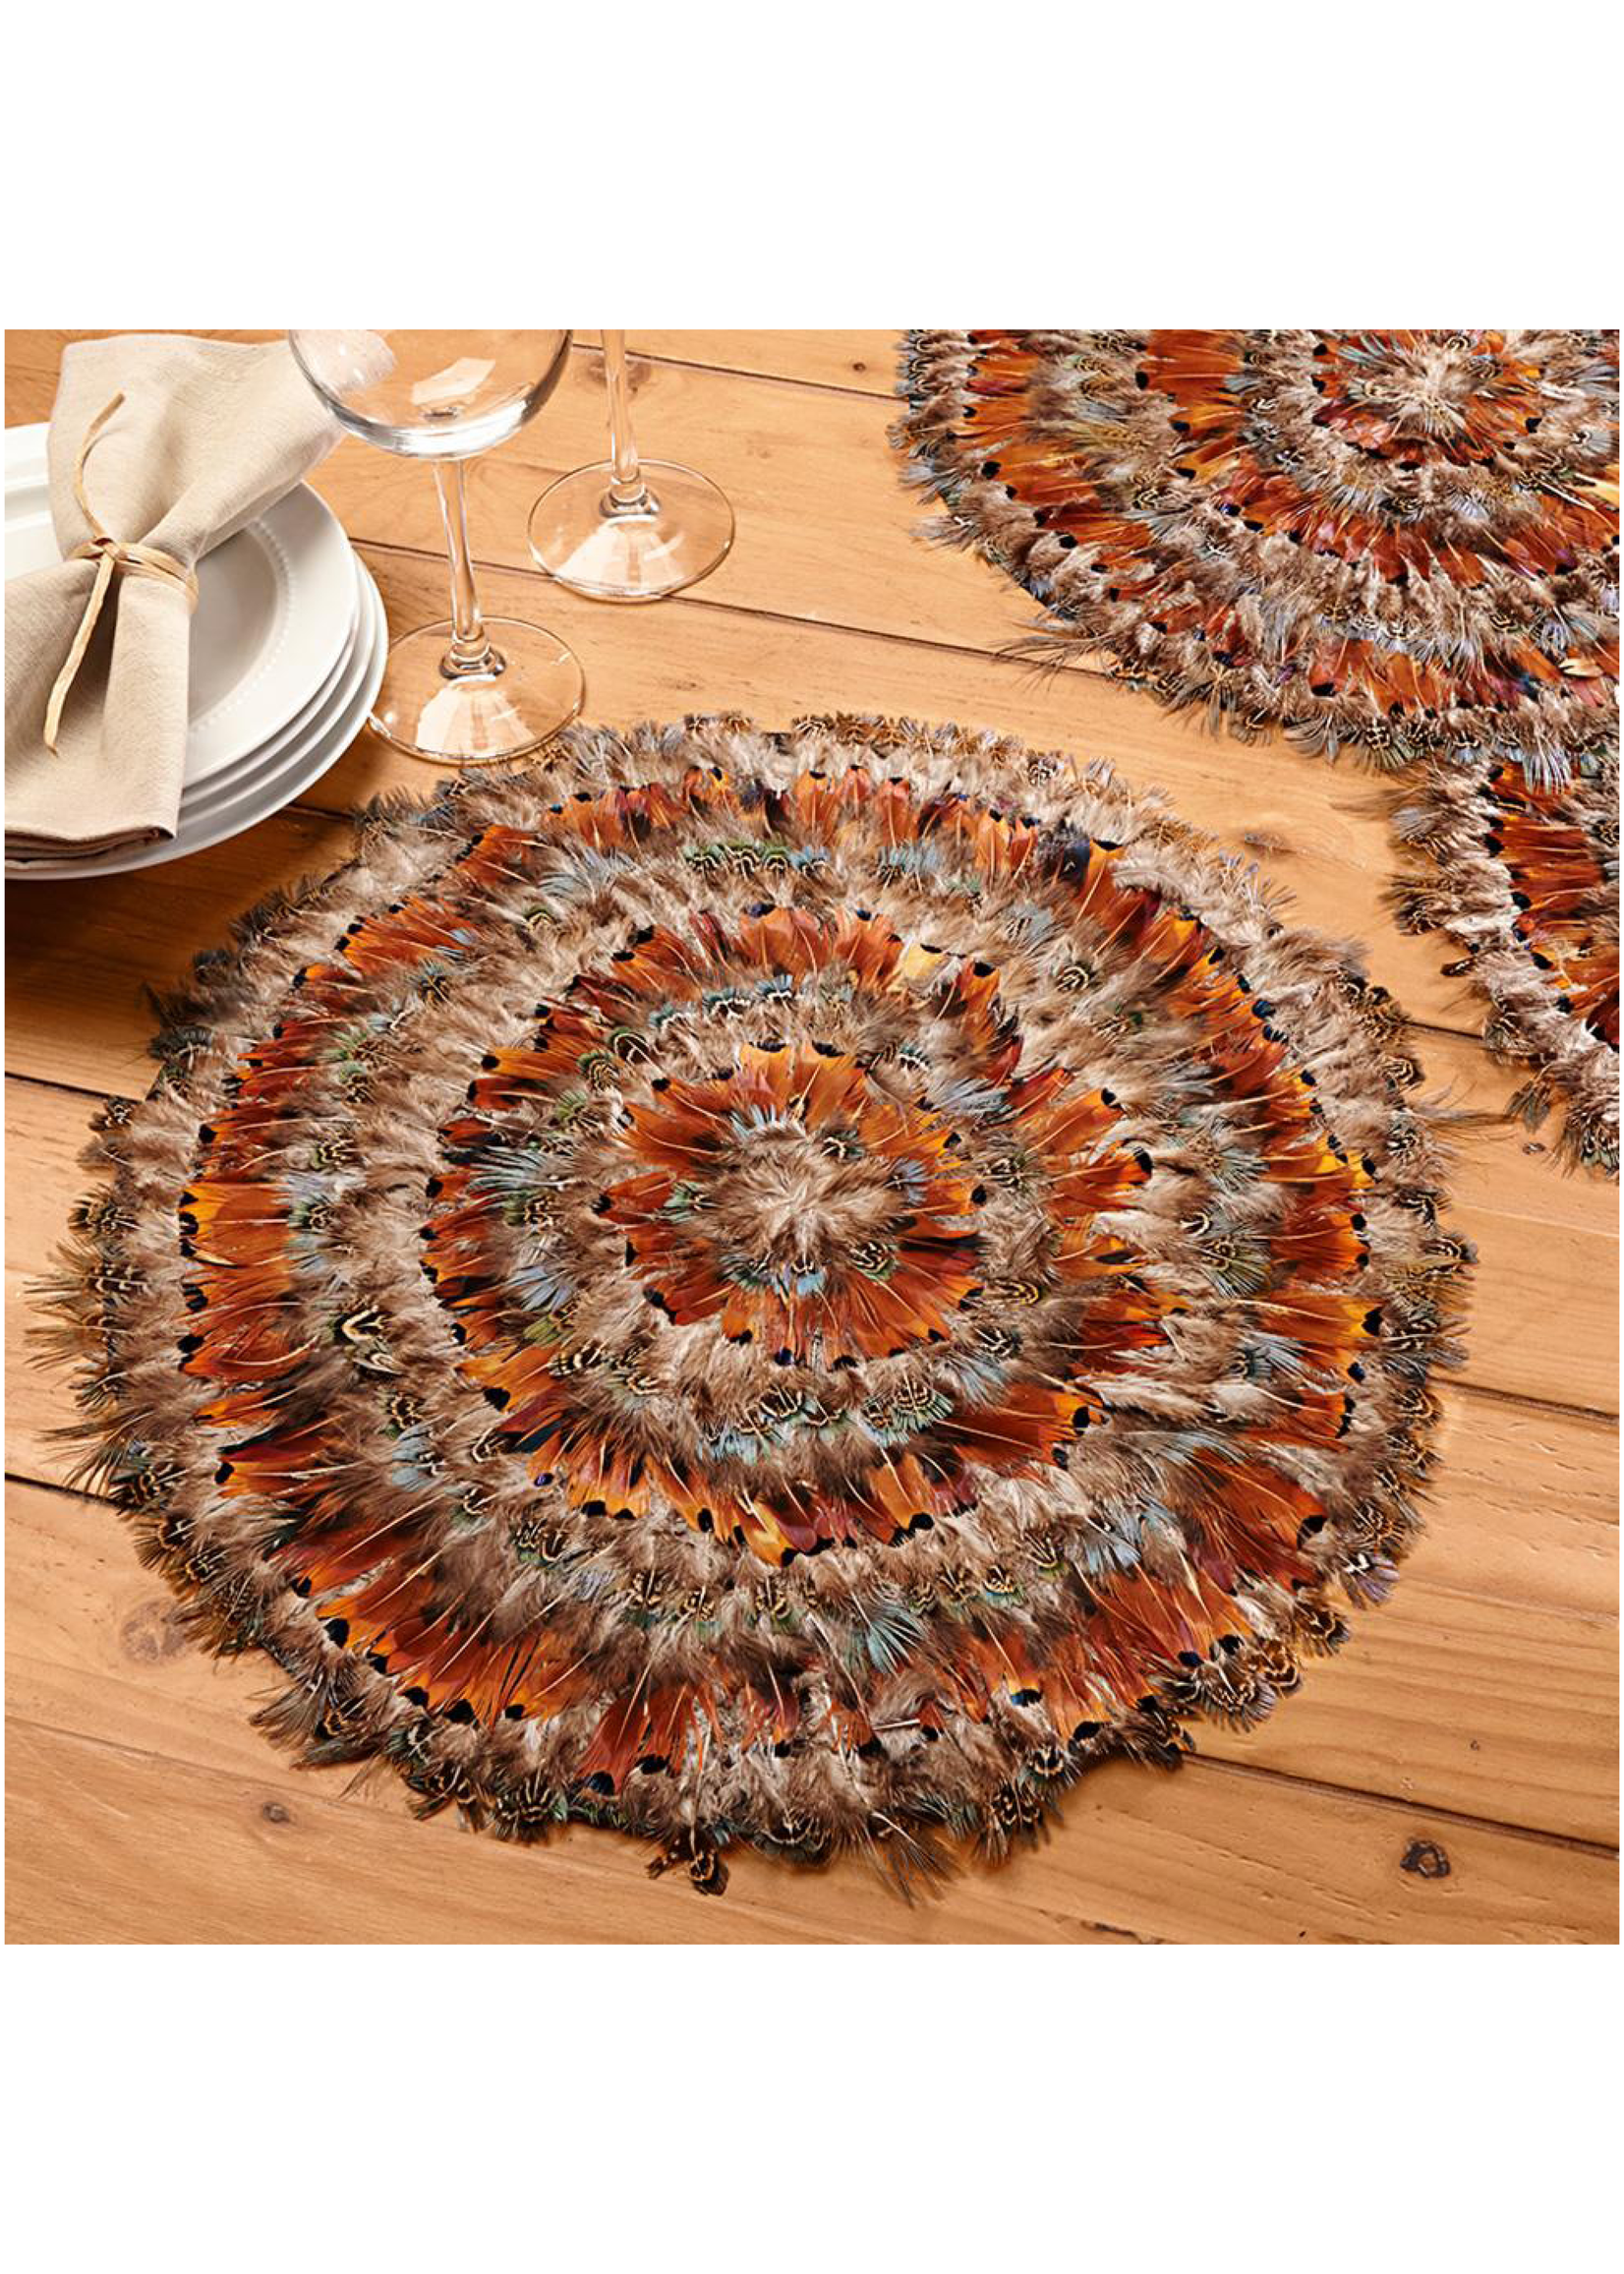 Two's Company, Inc. Pheasant Decorative Placemats